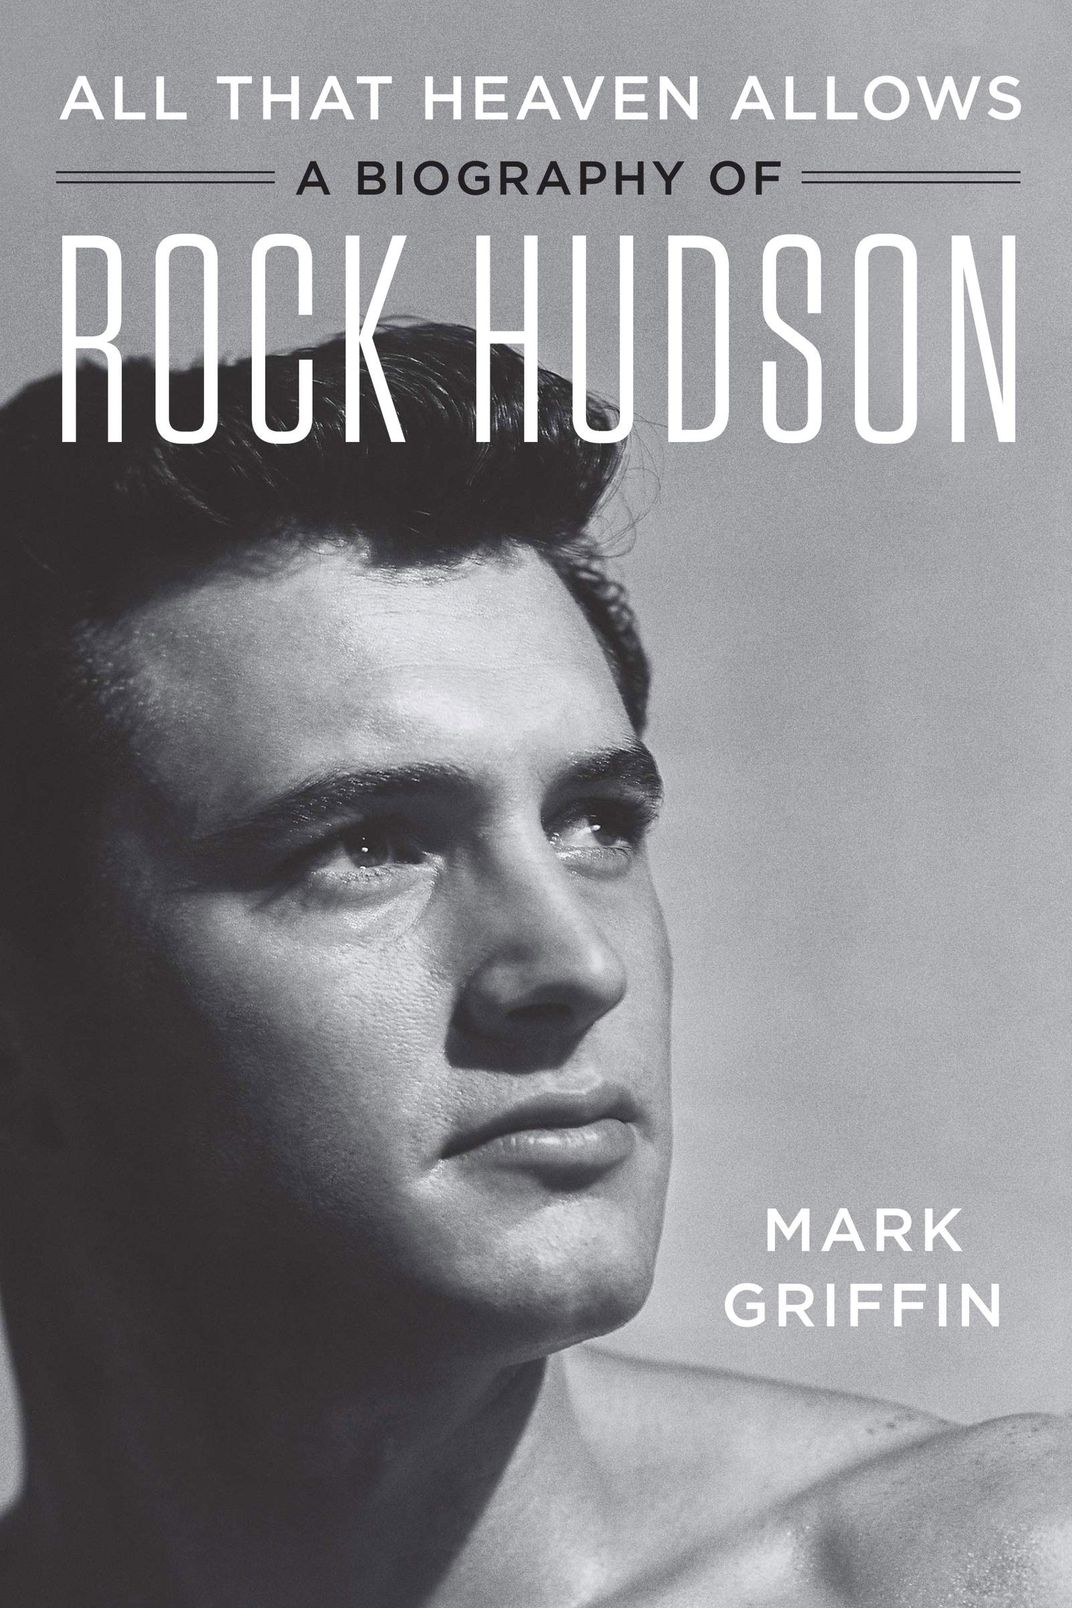 All That Heaven Allows: A Biography of Rock Hudson, by Mark Griffin (Harper, December 4)